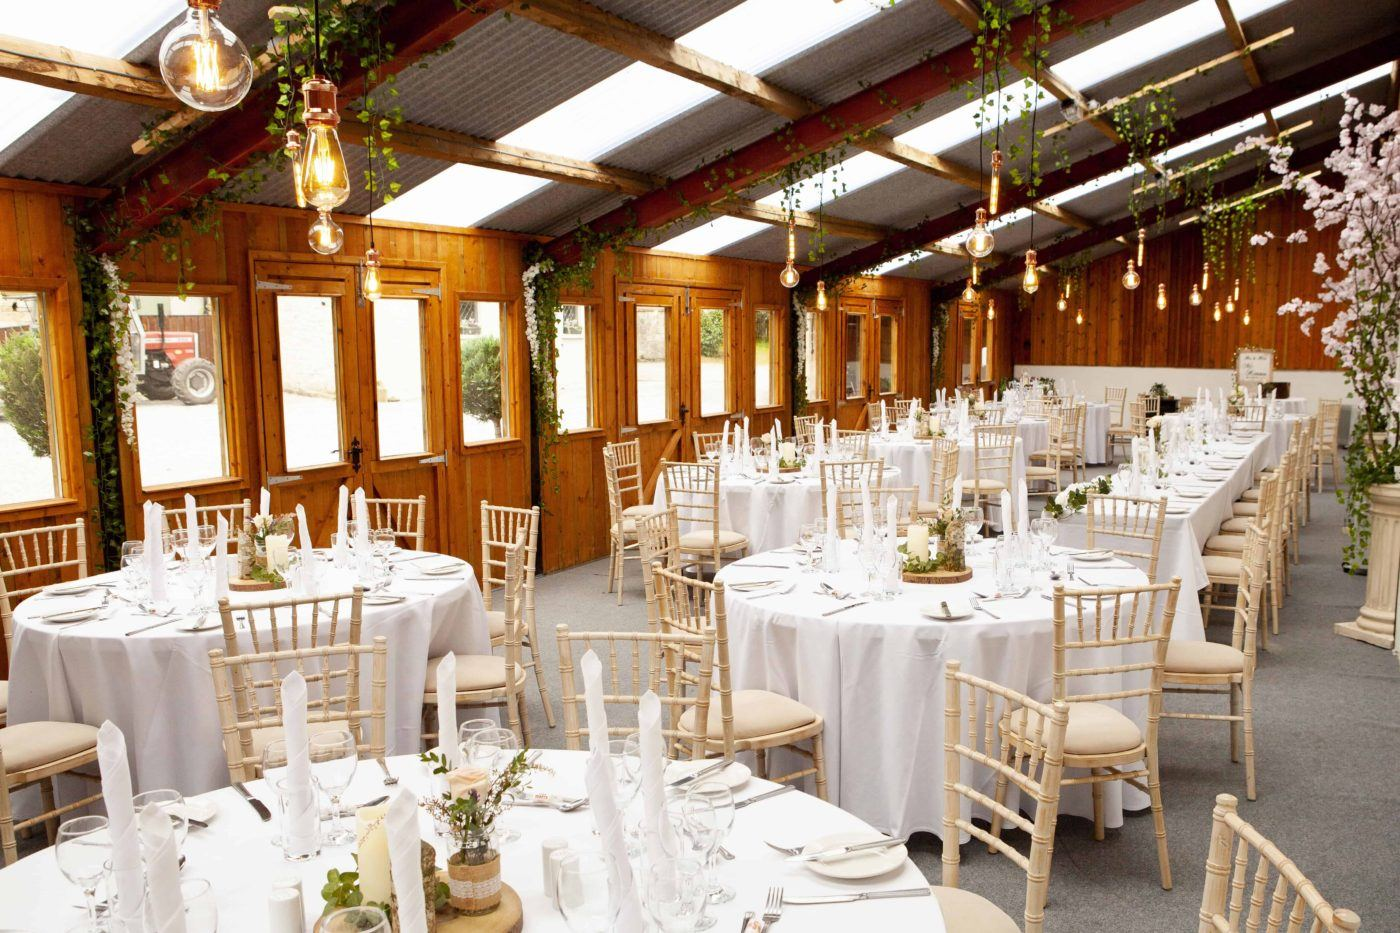 The Barn at Blessingbourne decorated for a wedding event